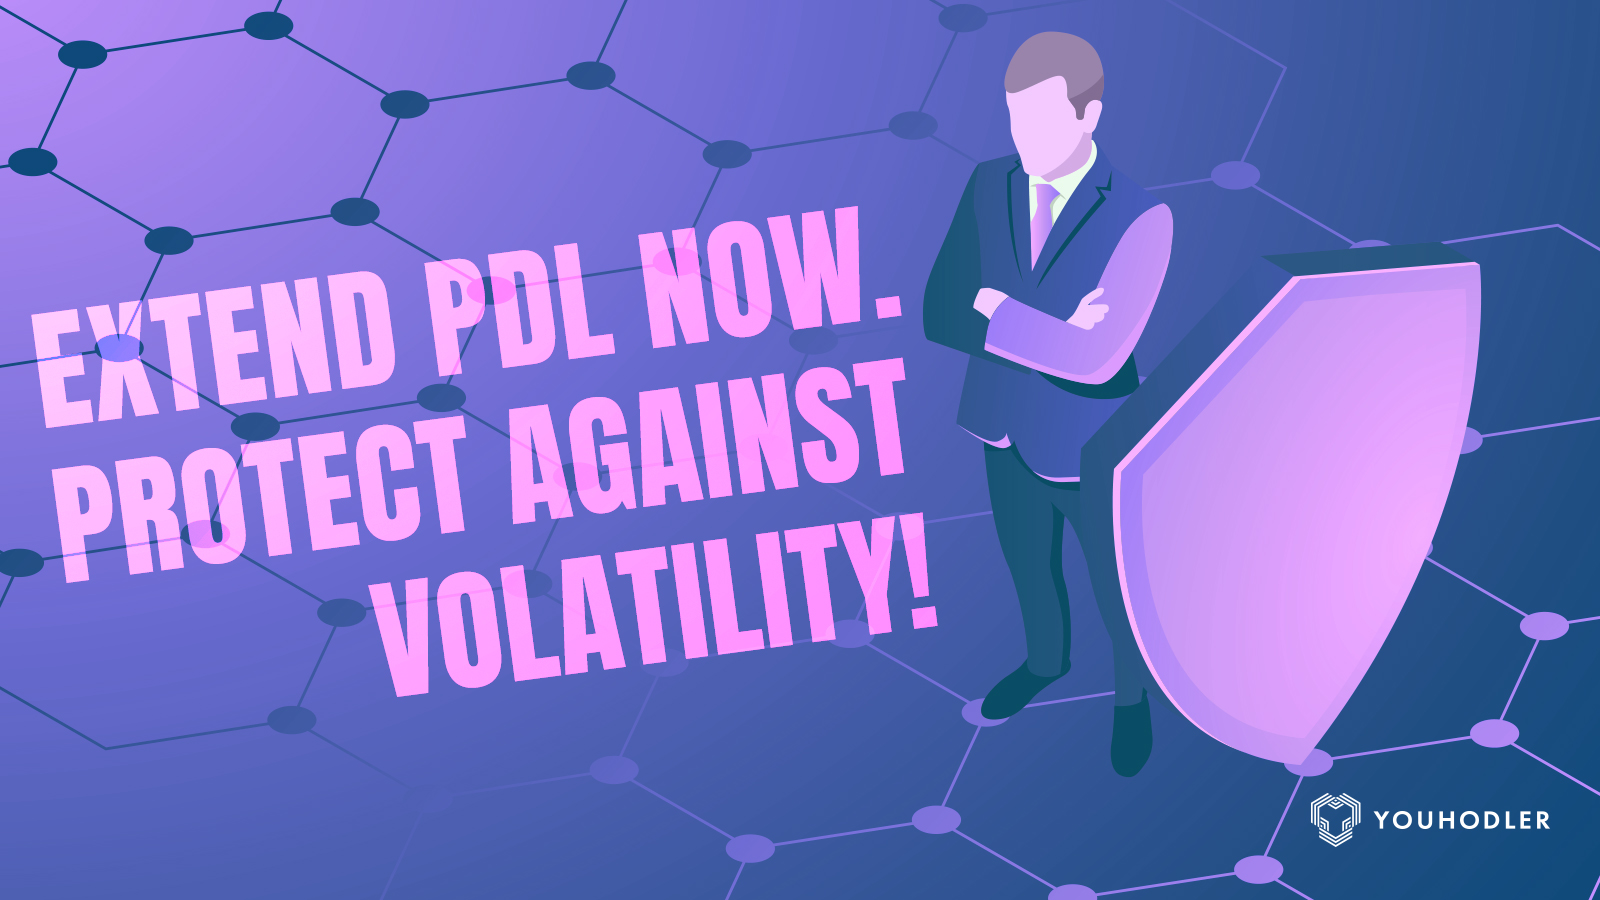 YouHodler's new PDL Extend feature improves the control its users have during market volatility. Now, users extend the price down limit on their opened loans and protect them from any sudden market volatility.